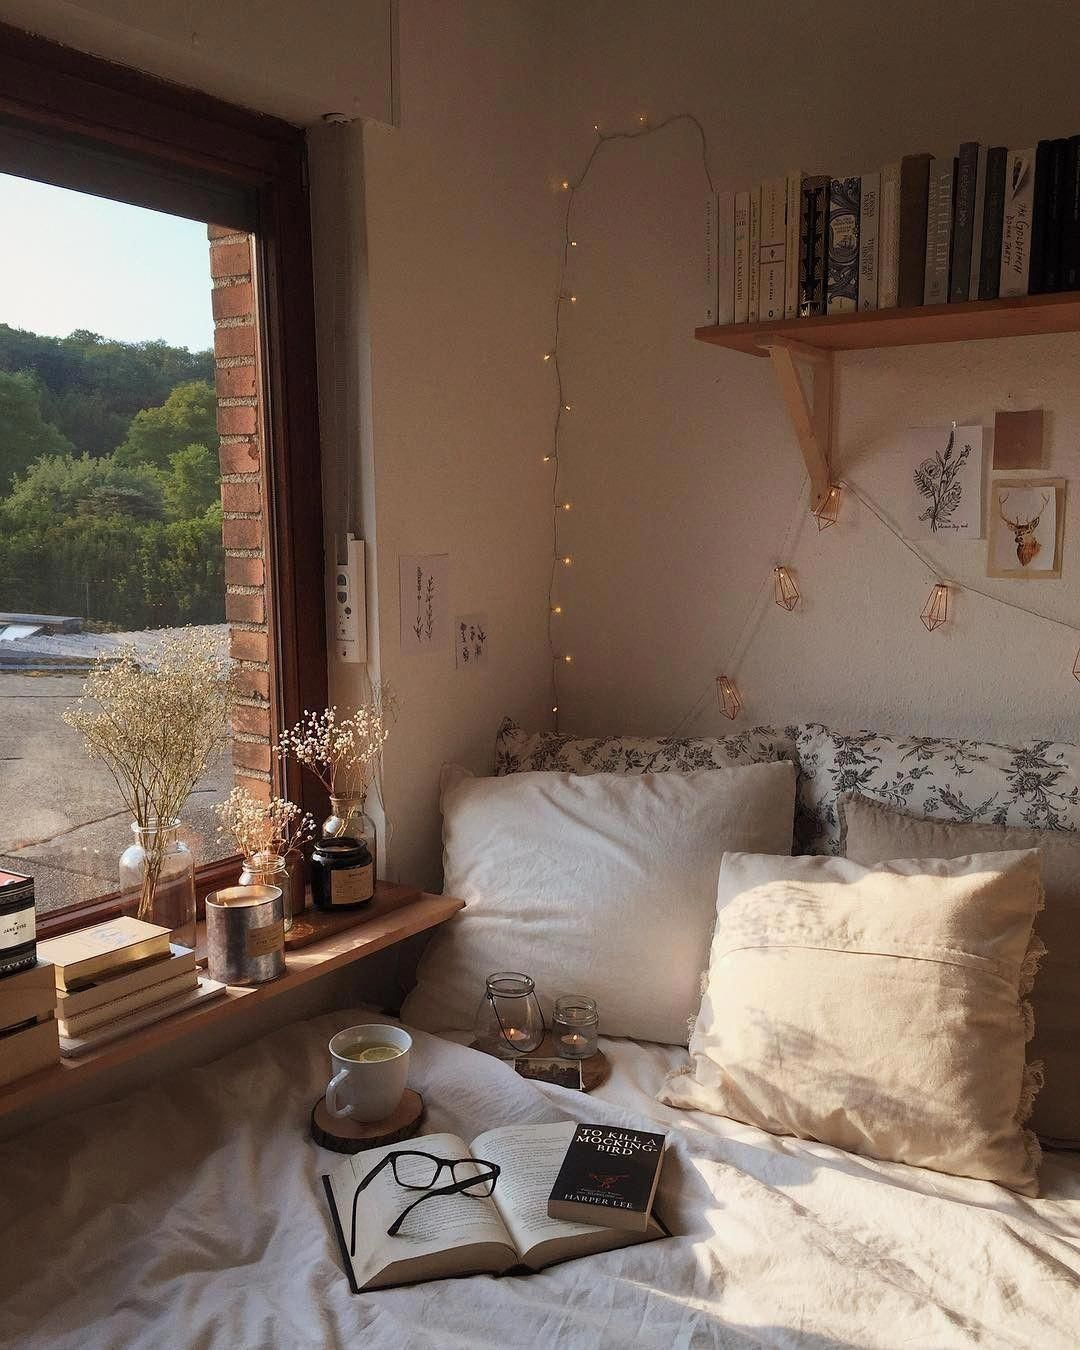 35 Amazingly Pretty Shabby Chic Bedroom Design And Decor Ideas Aesthetic Rooms Small Room Bedroom Aesthetic Bedroom